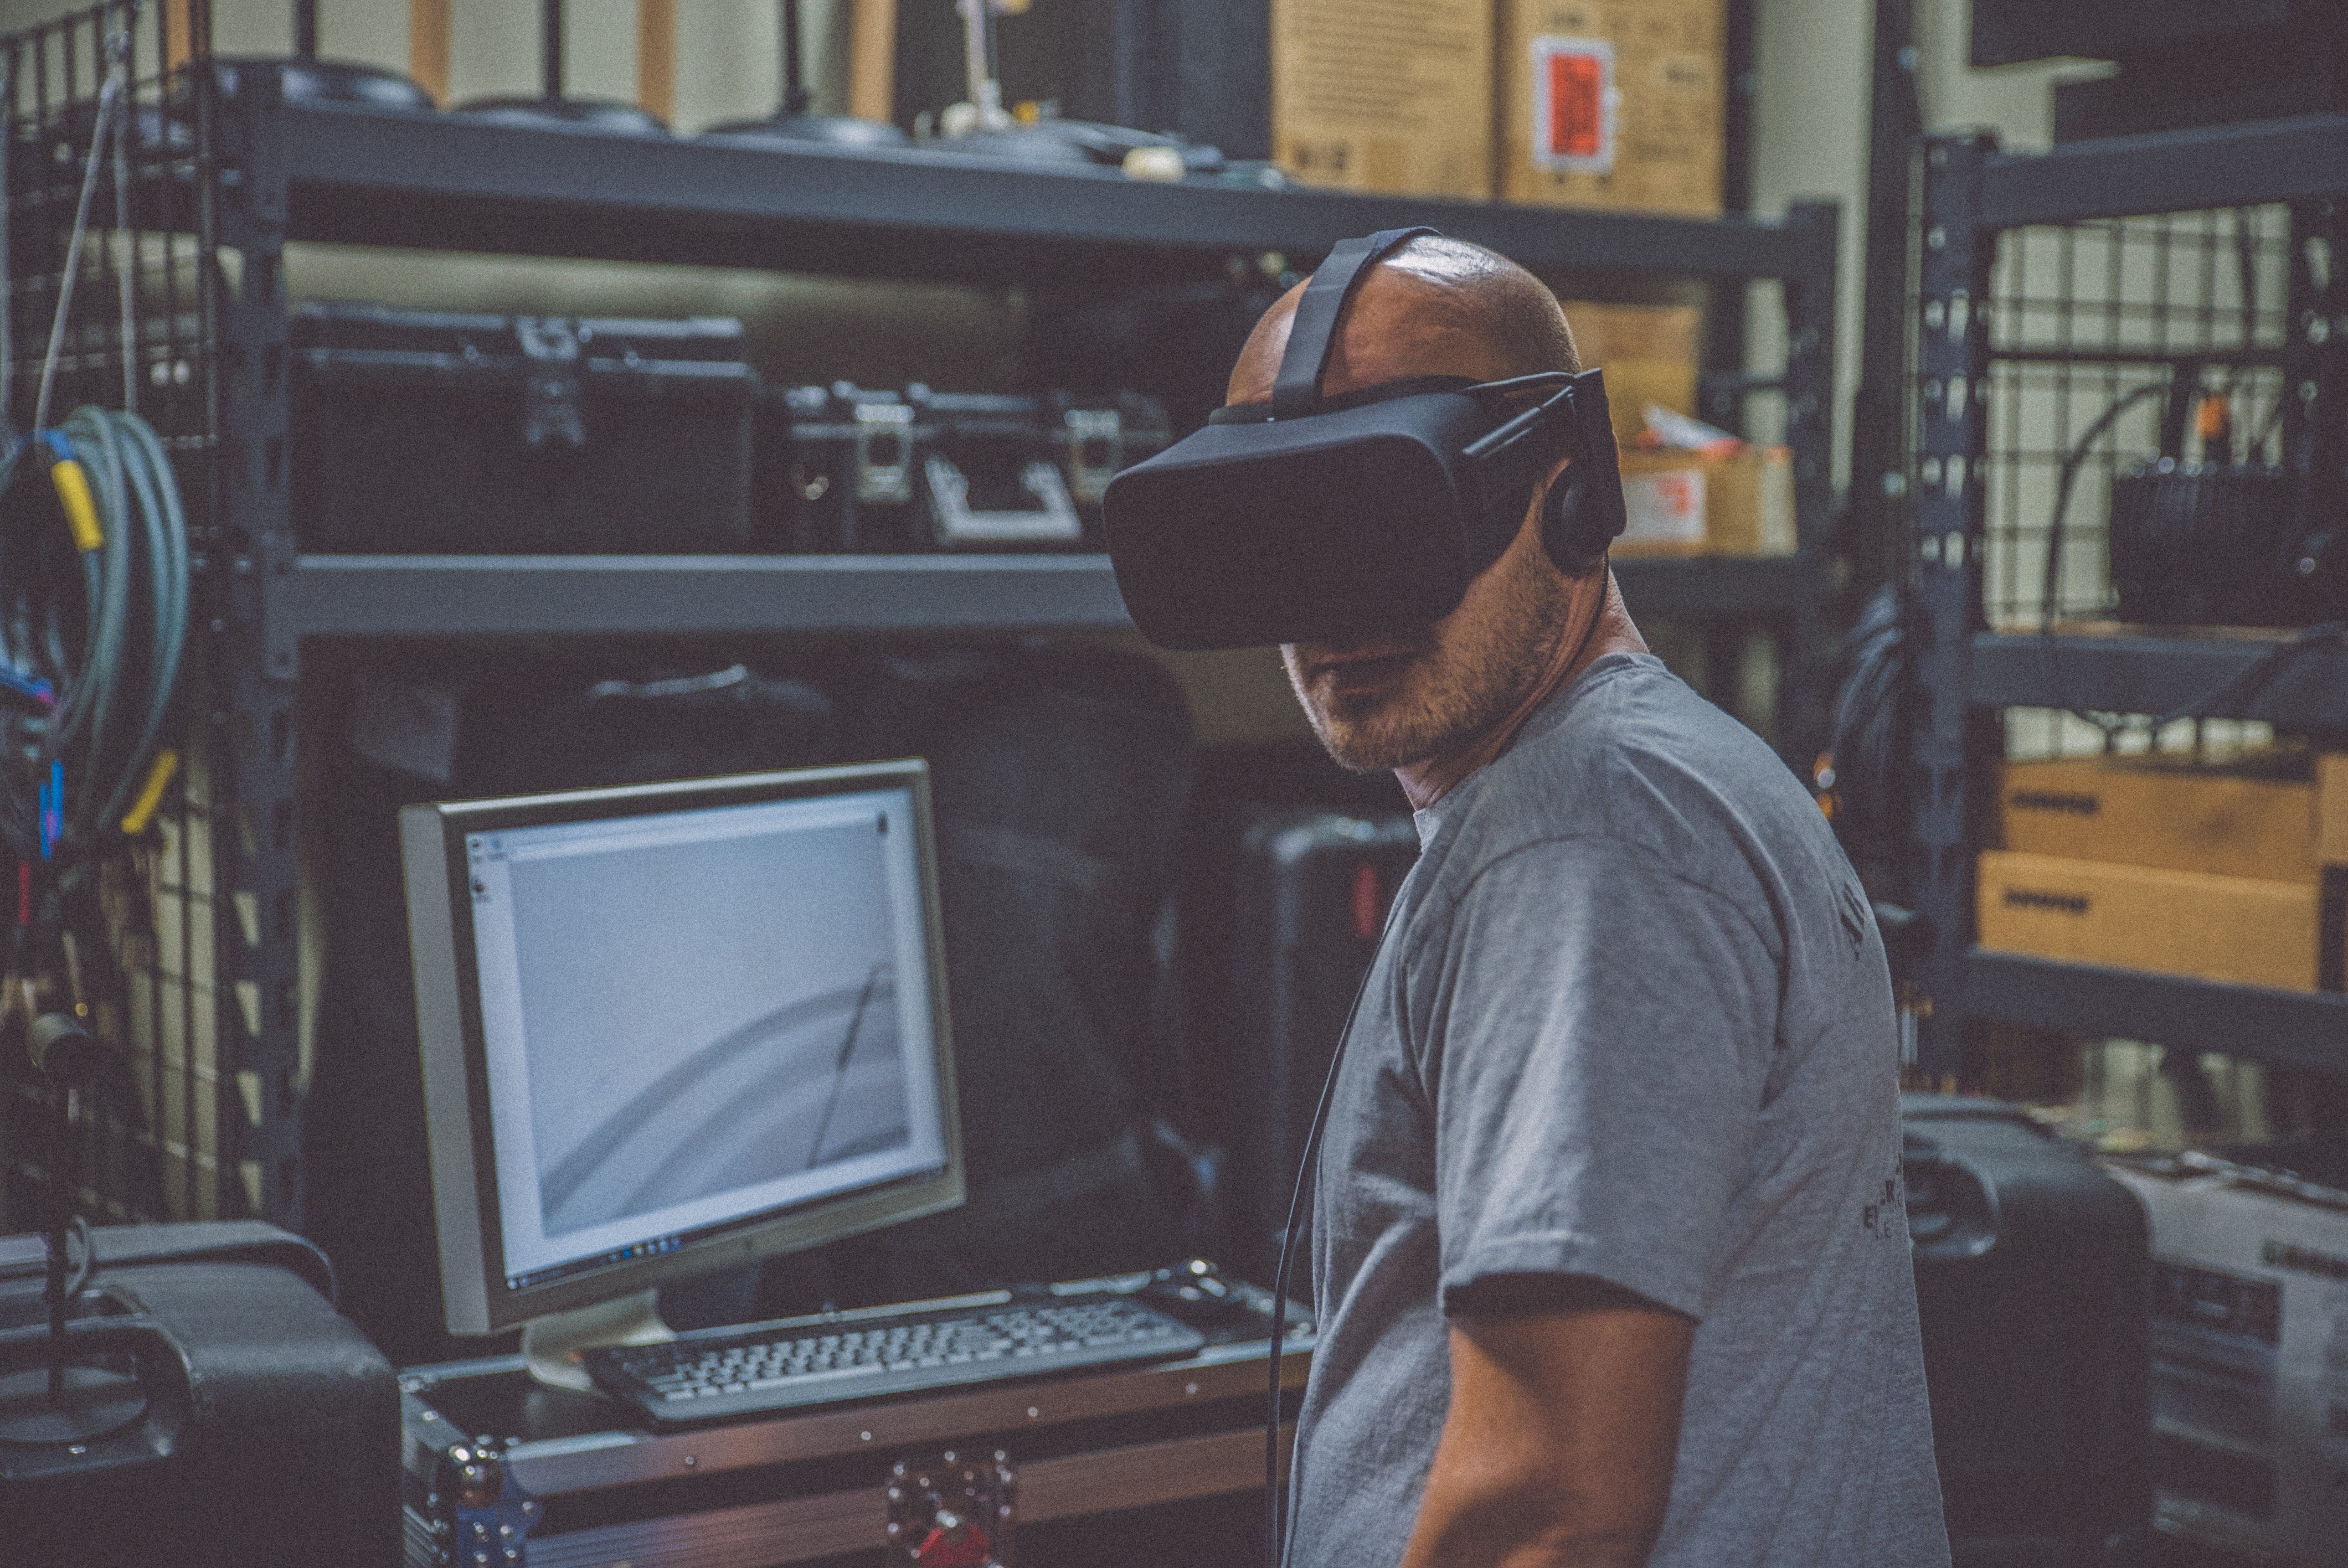 Person testing web application in virtual reality